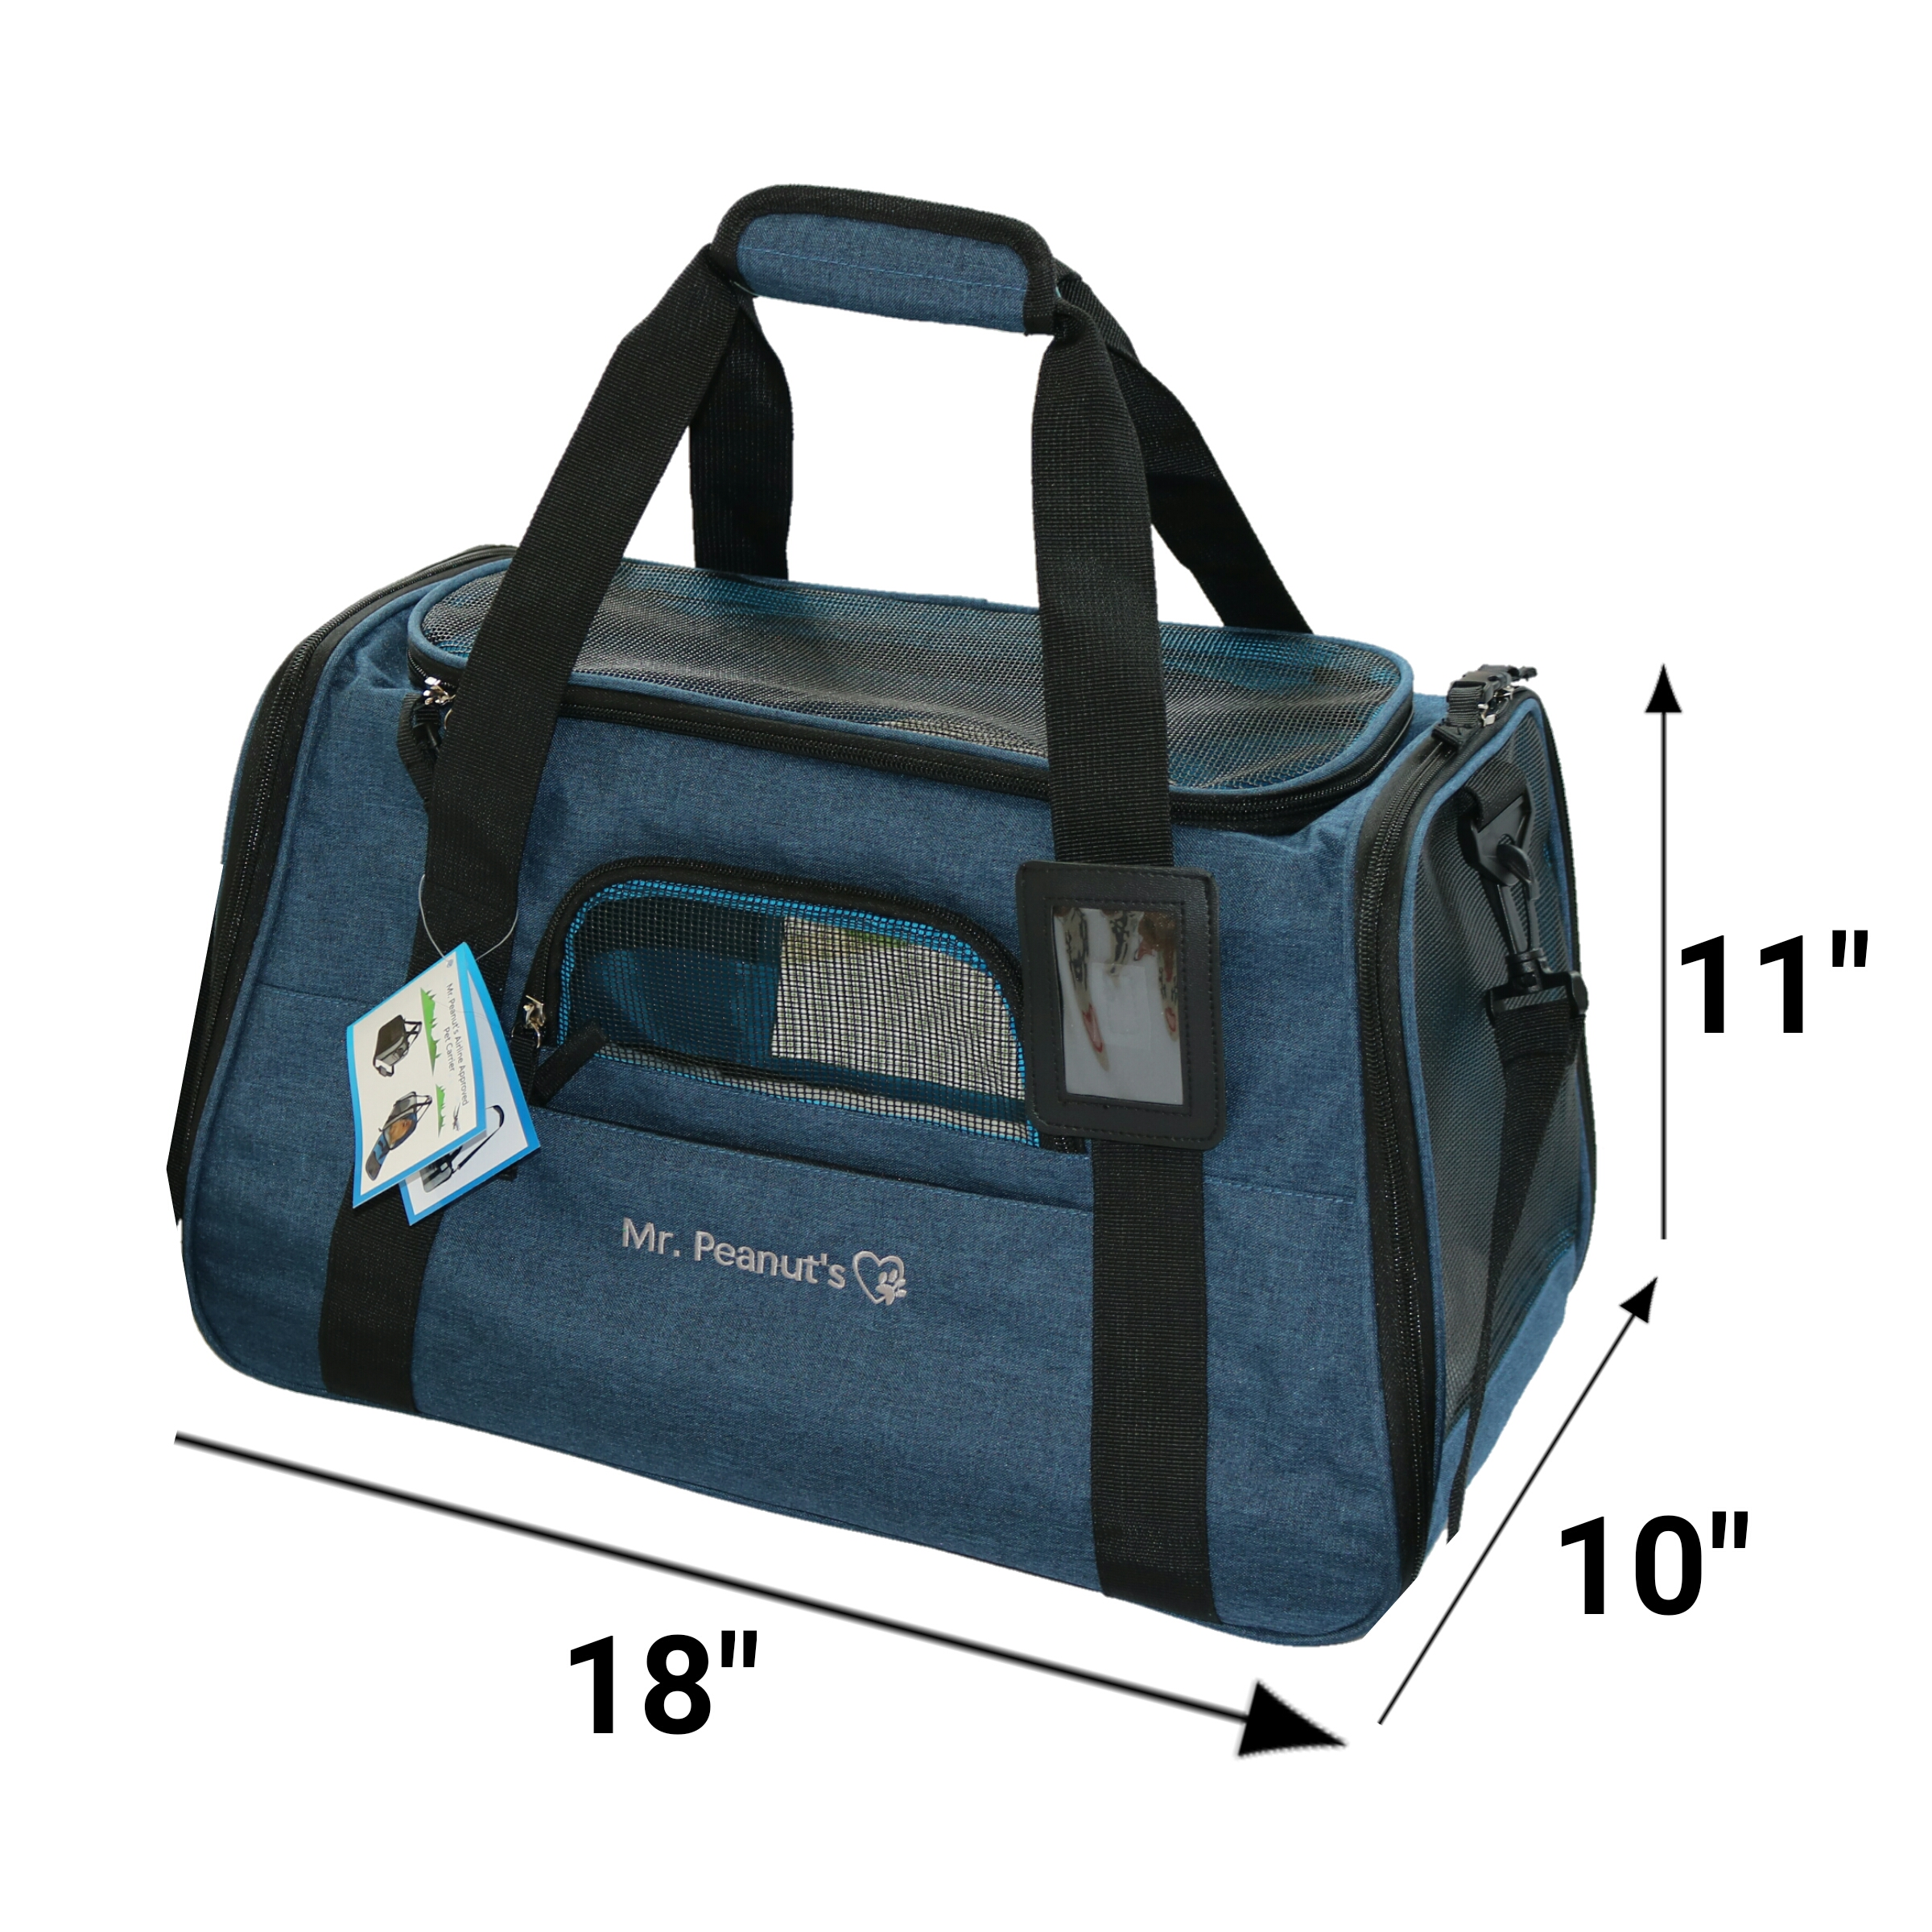 "Premium Airline Approved Soft Sided Pet Carrier by Mr. Peanut's, 18X10X11"" Travel Tote with Plush Fleece Bedding & Strong 1/4"" Padded Wood Base, Seatbelt Attachments, Perfect for Cats and Small Dogs"